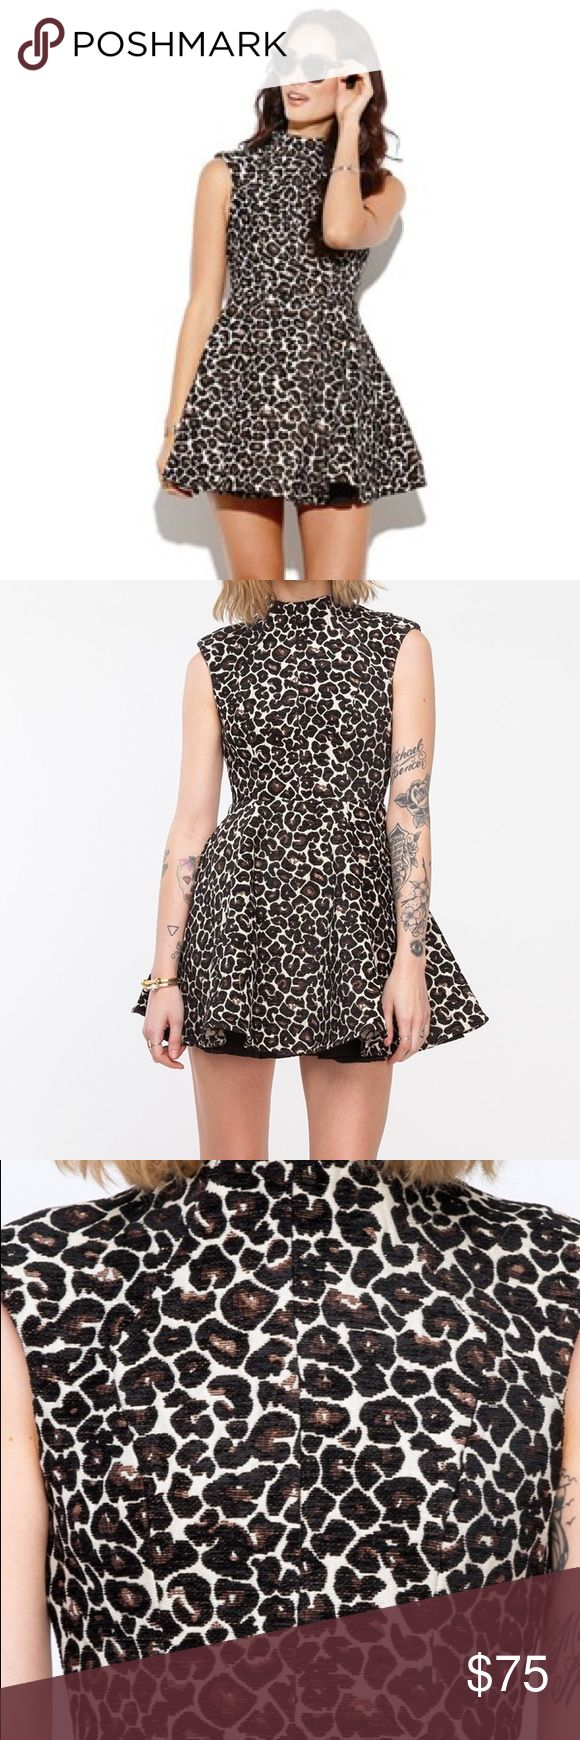 """Cameo Luck Now Dress, Brand New and never worn! NWOT, A textured, jacquard woven dress from Cameo in an exclusive leopard pattern. Features a structured body. Size small best fits size 2,4. •Sleeveless jacquard dress  •Flared skirt •High neckline •YKK back zip closure •Fully lined •45% Cotton, 55% Polyester •100% Polyester lining •Wash cold inside out, air dry.                   15.5"""" bust 12"""" waist 30.5"""" shoulder to hem Measurements taken from size extra small Model wears size extra…"""